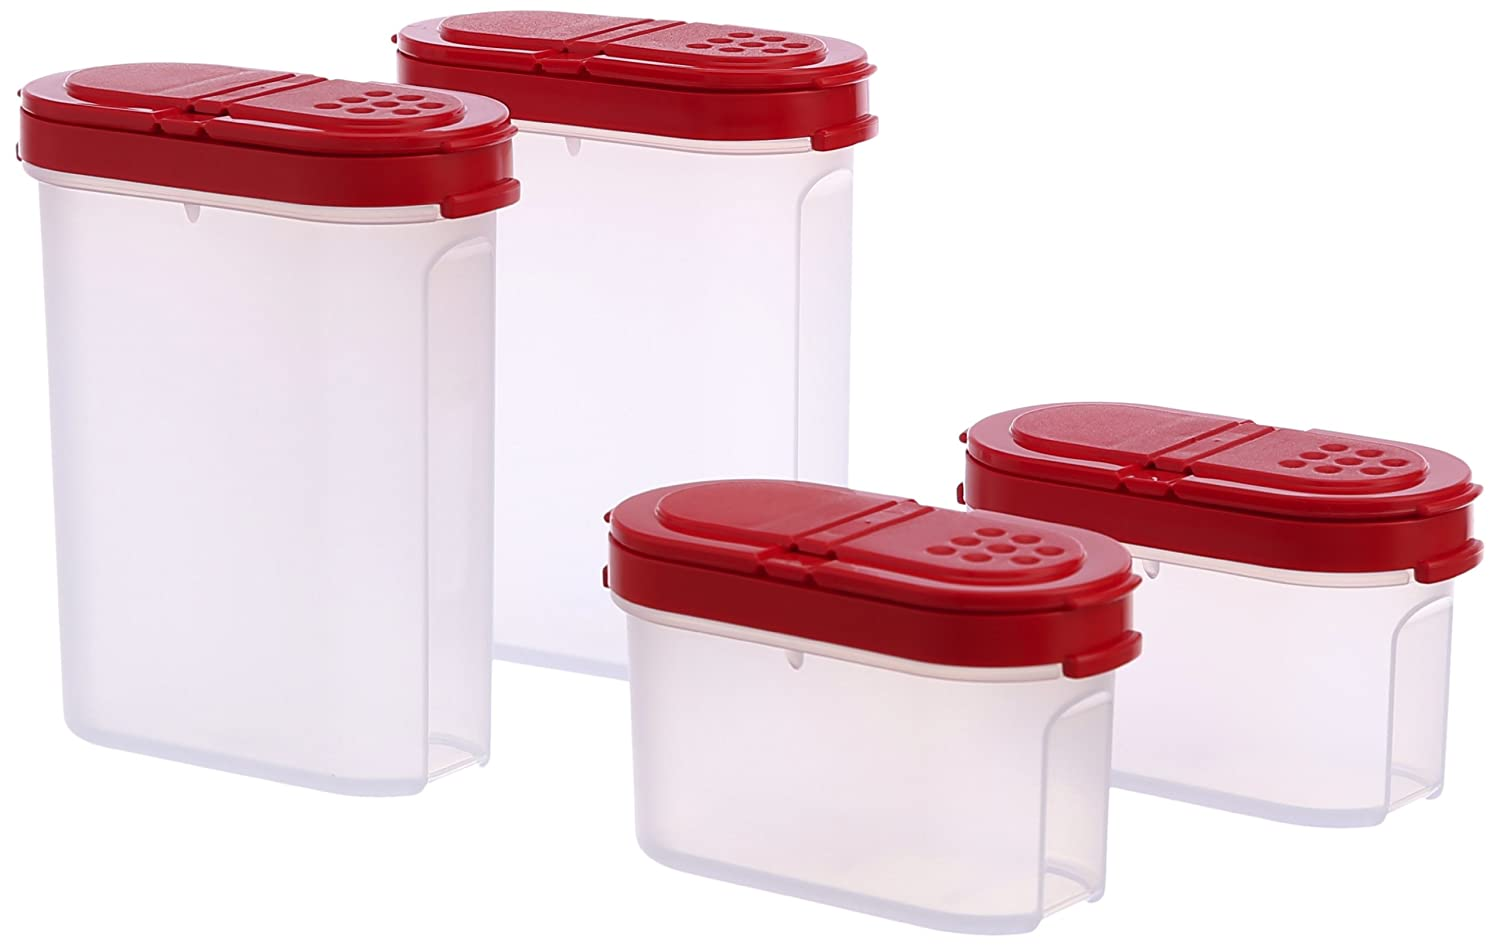 Buy Tupperware Modular Spice Shakers Set, Set of 4 (128) Online at ...